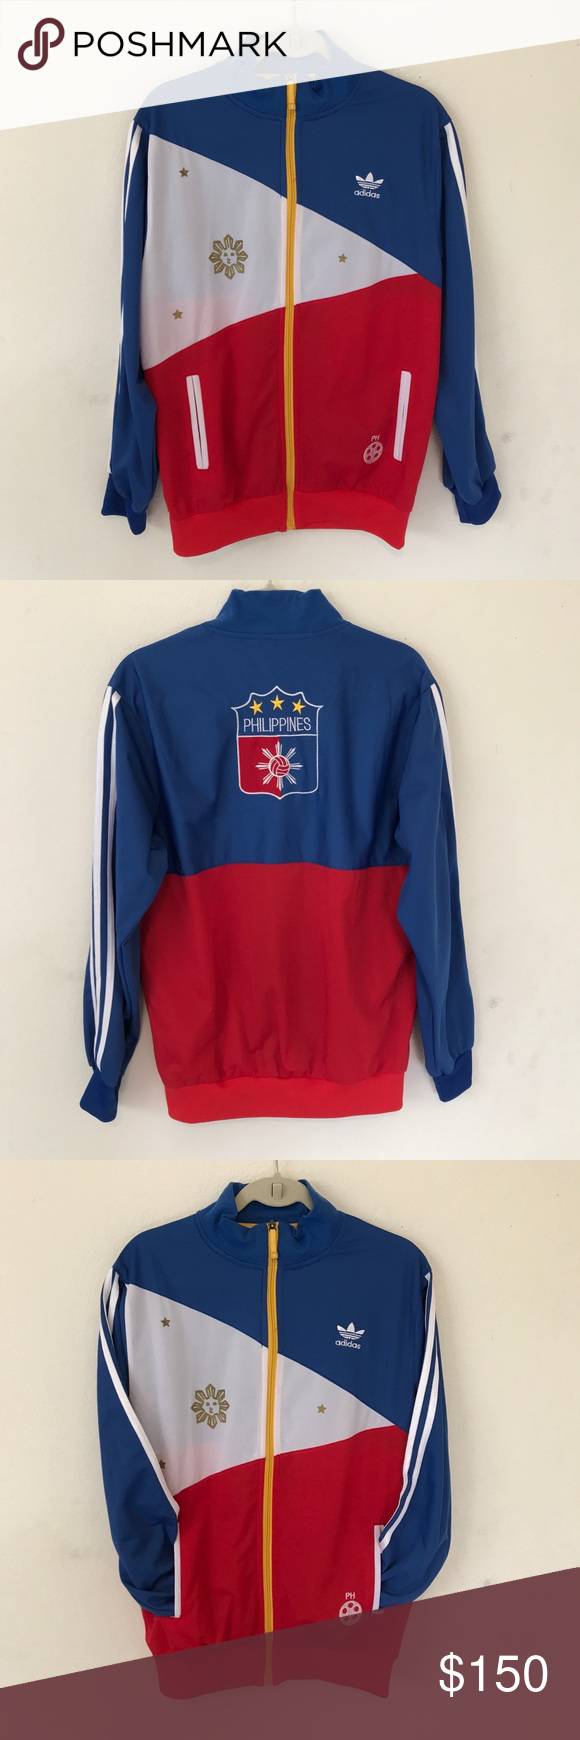 Adidas Manny Pacquiao Pacman Track Jacket XL Pinterest adidas